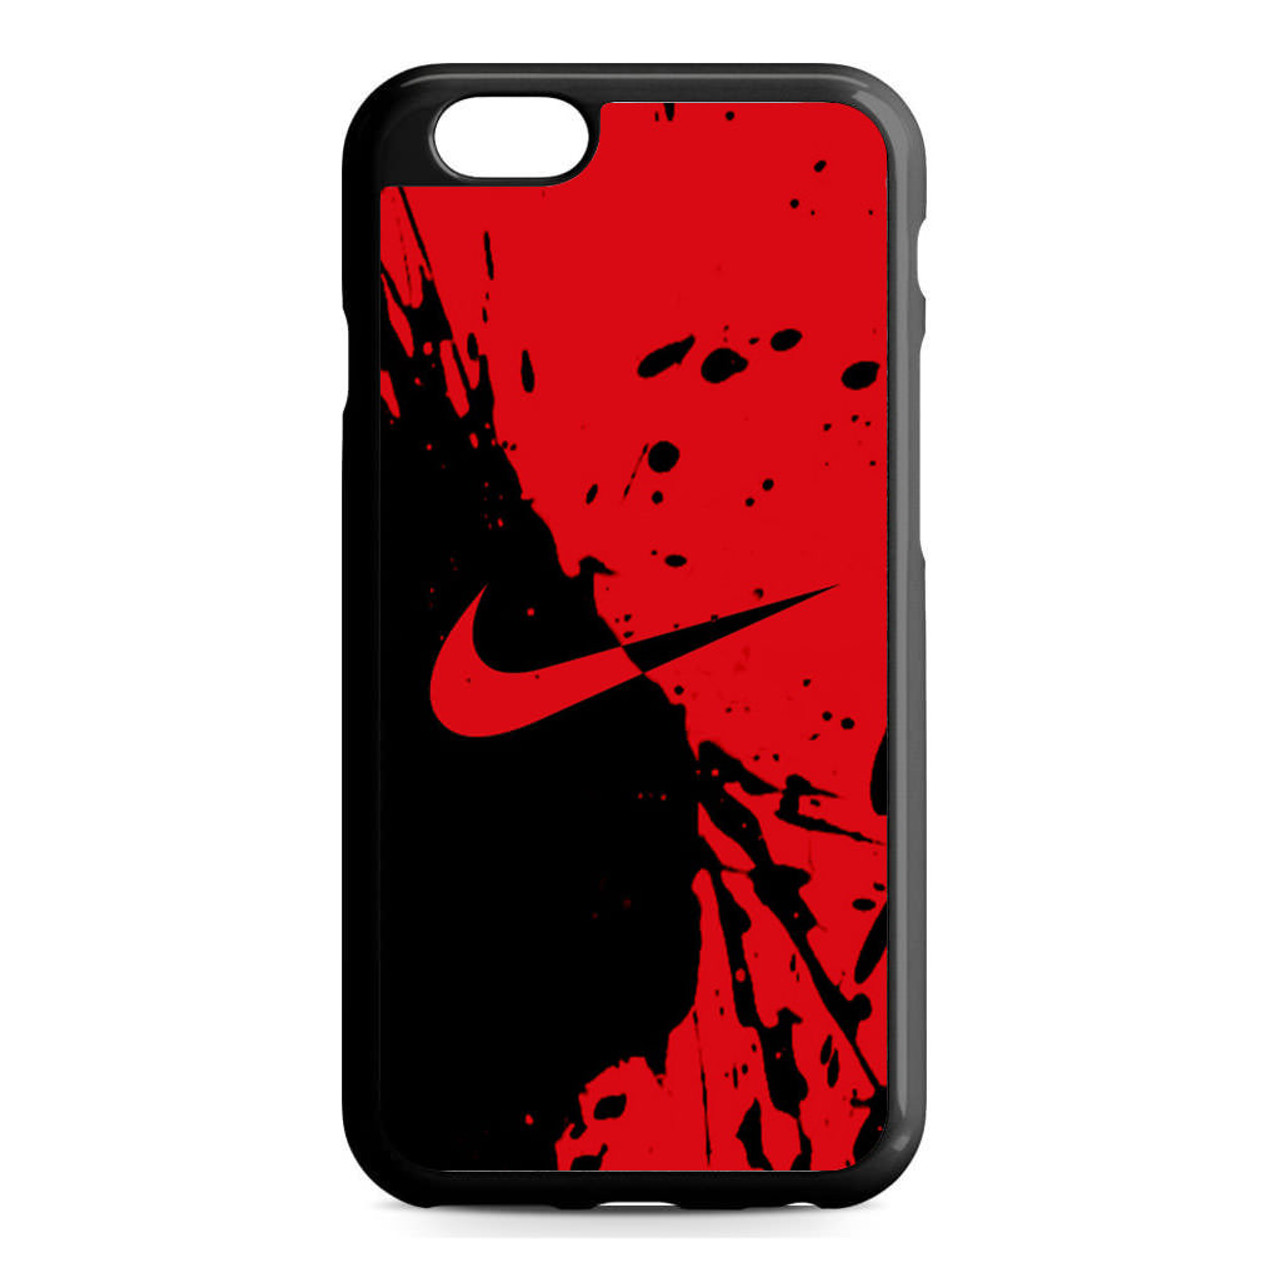 huge discount 6a4c7 7937d Nike Red and Black iPhone 6/6S Case